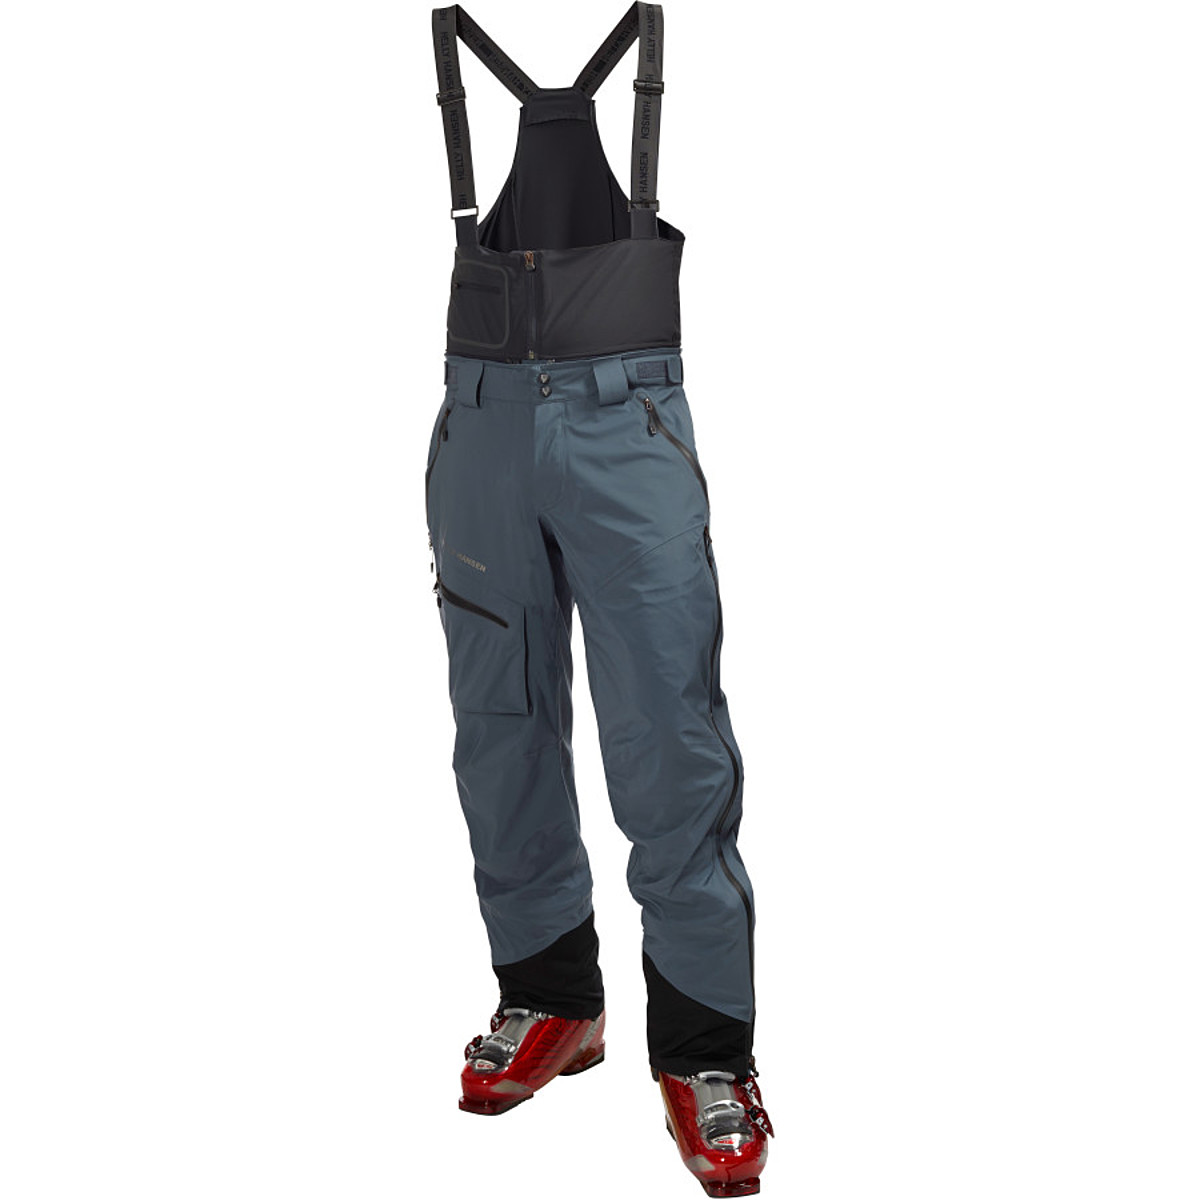 Helly Hansen Odin 3L Mountain Pant